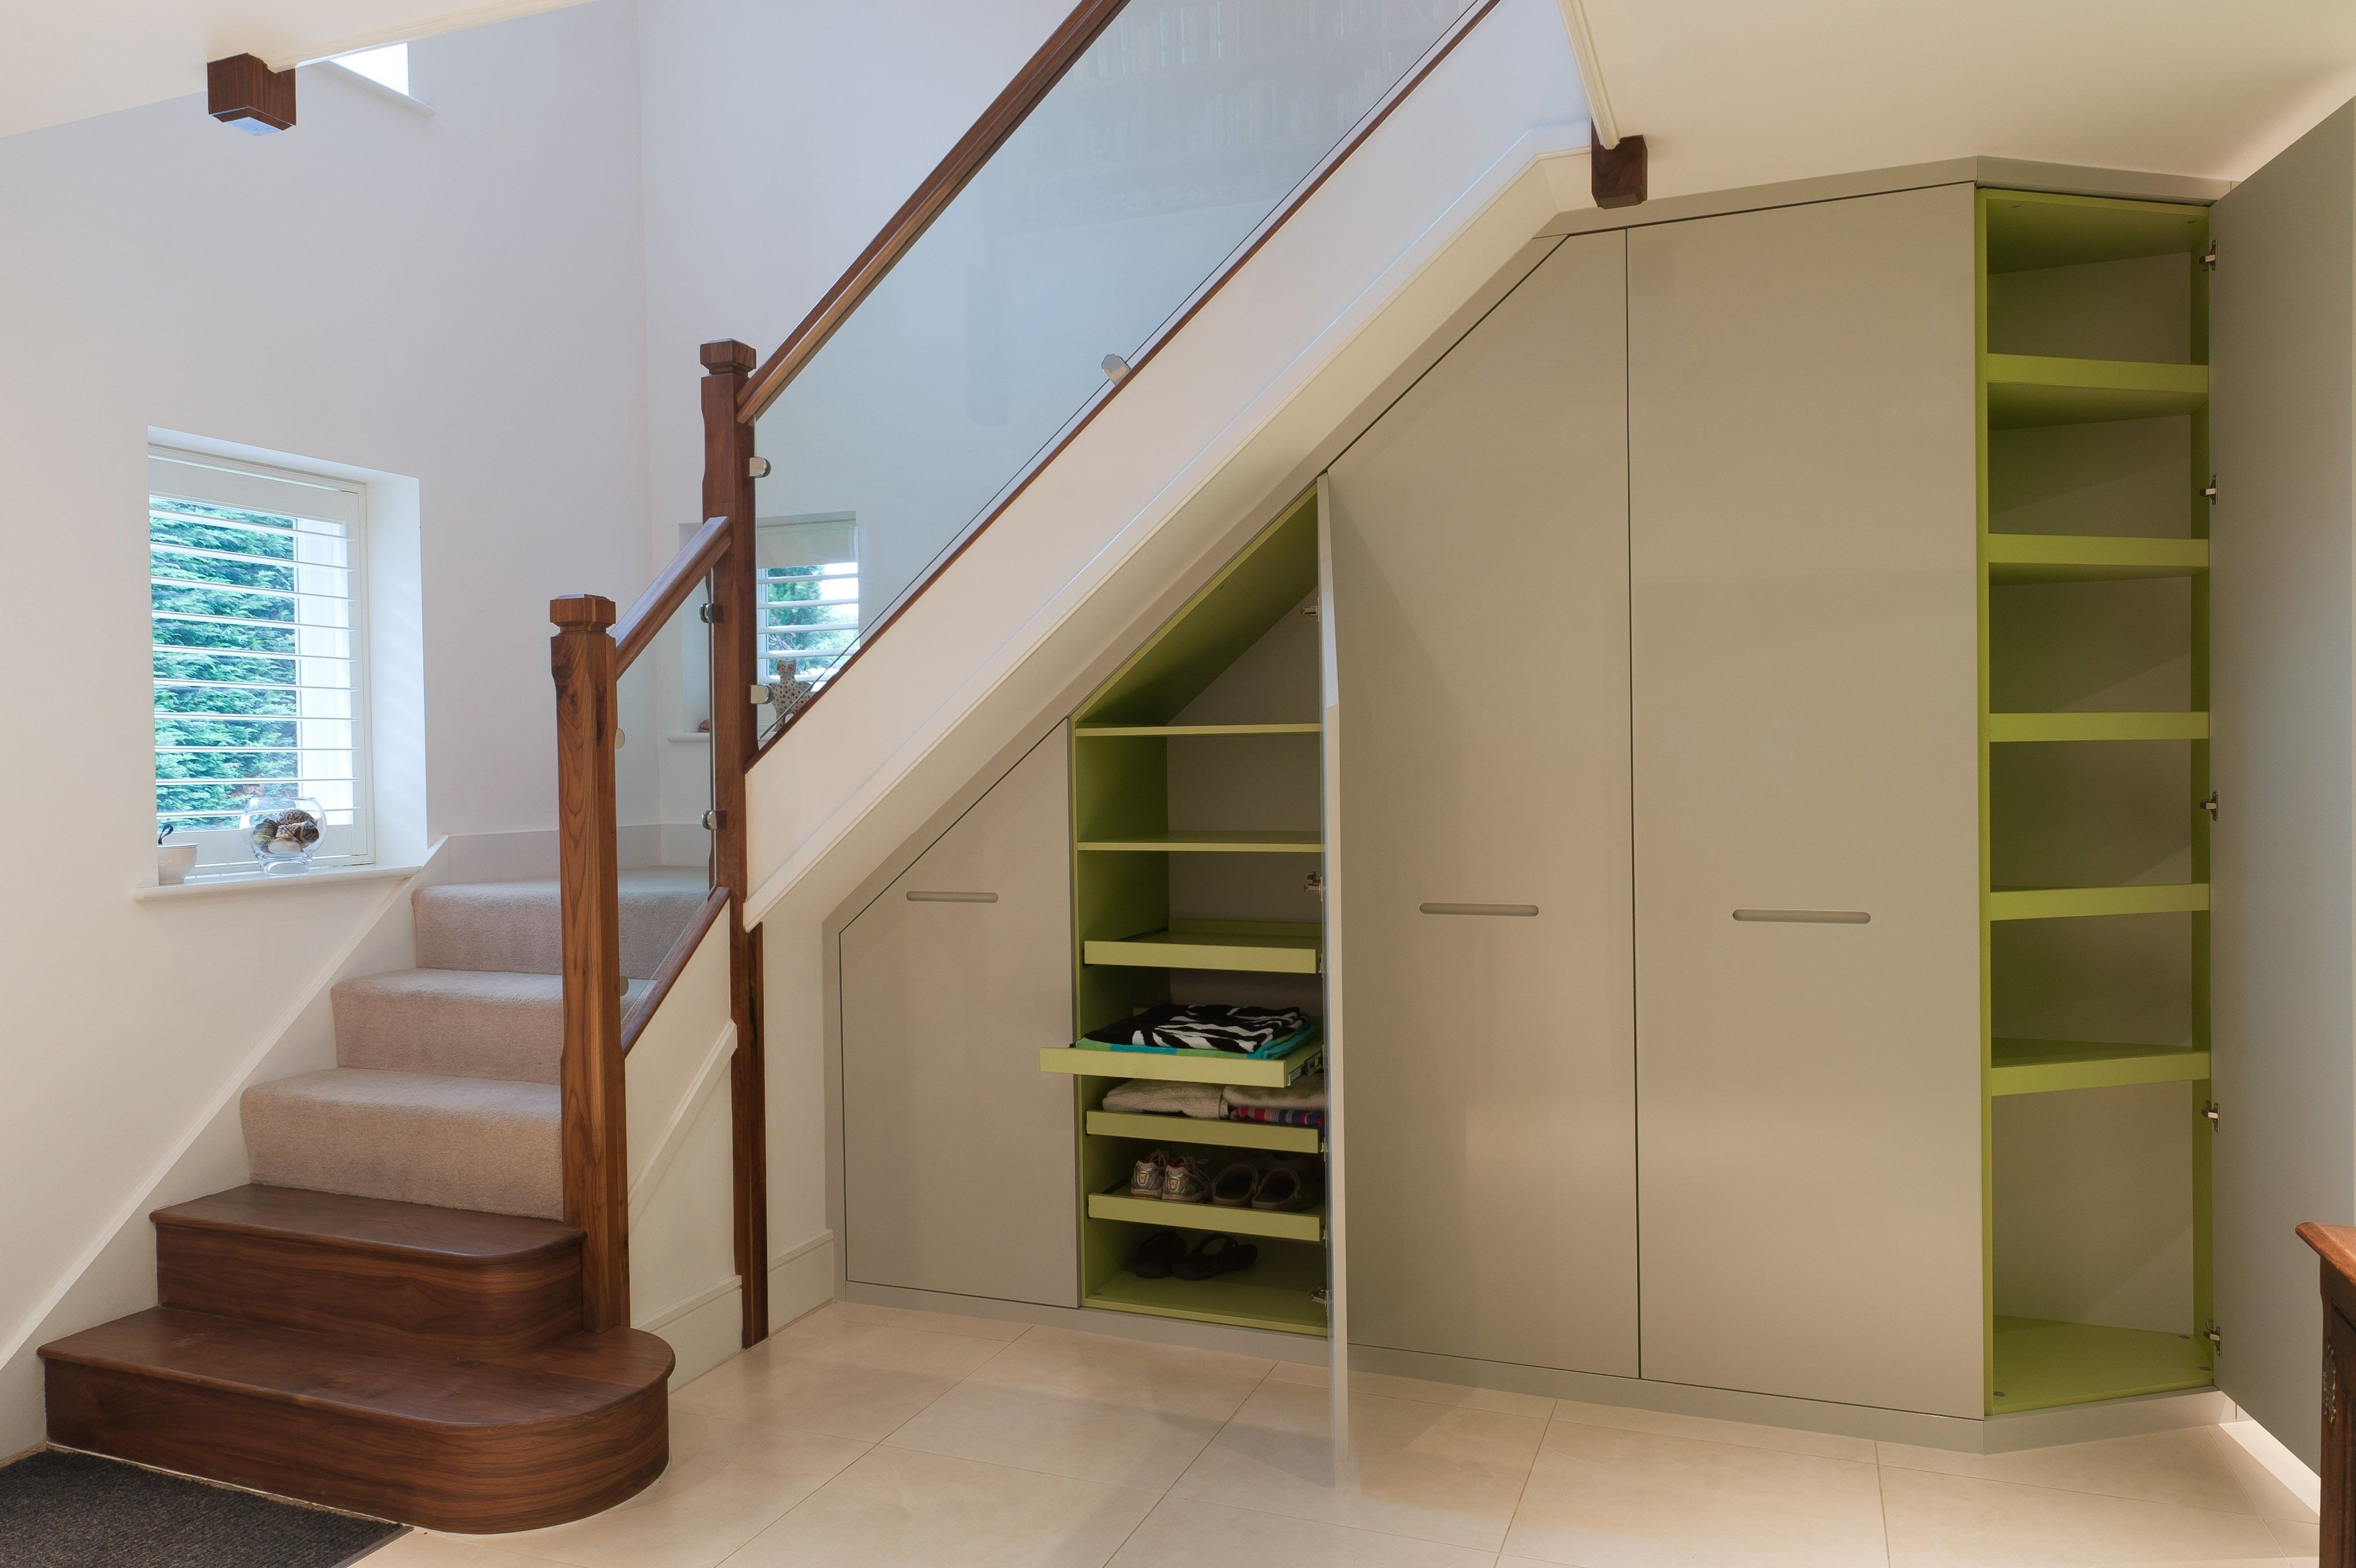 Pin By Suzy Leopold On Closets And Pantries Closet Under Stairs Under Stairs Pantry Built In Pantry